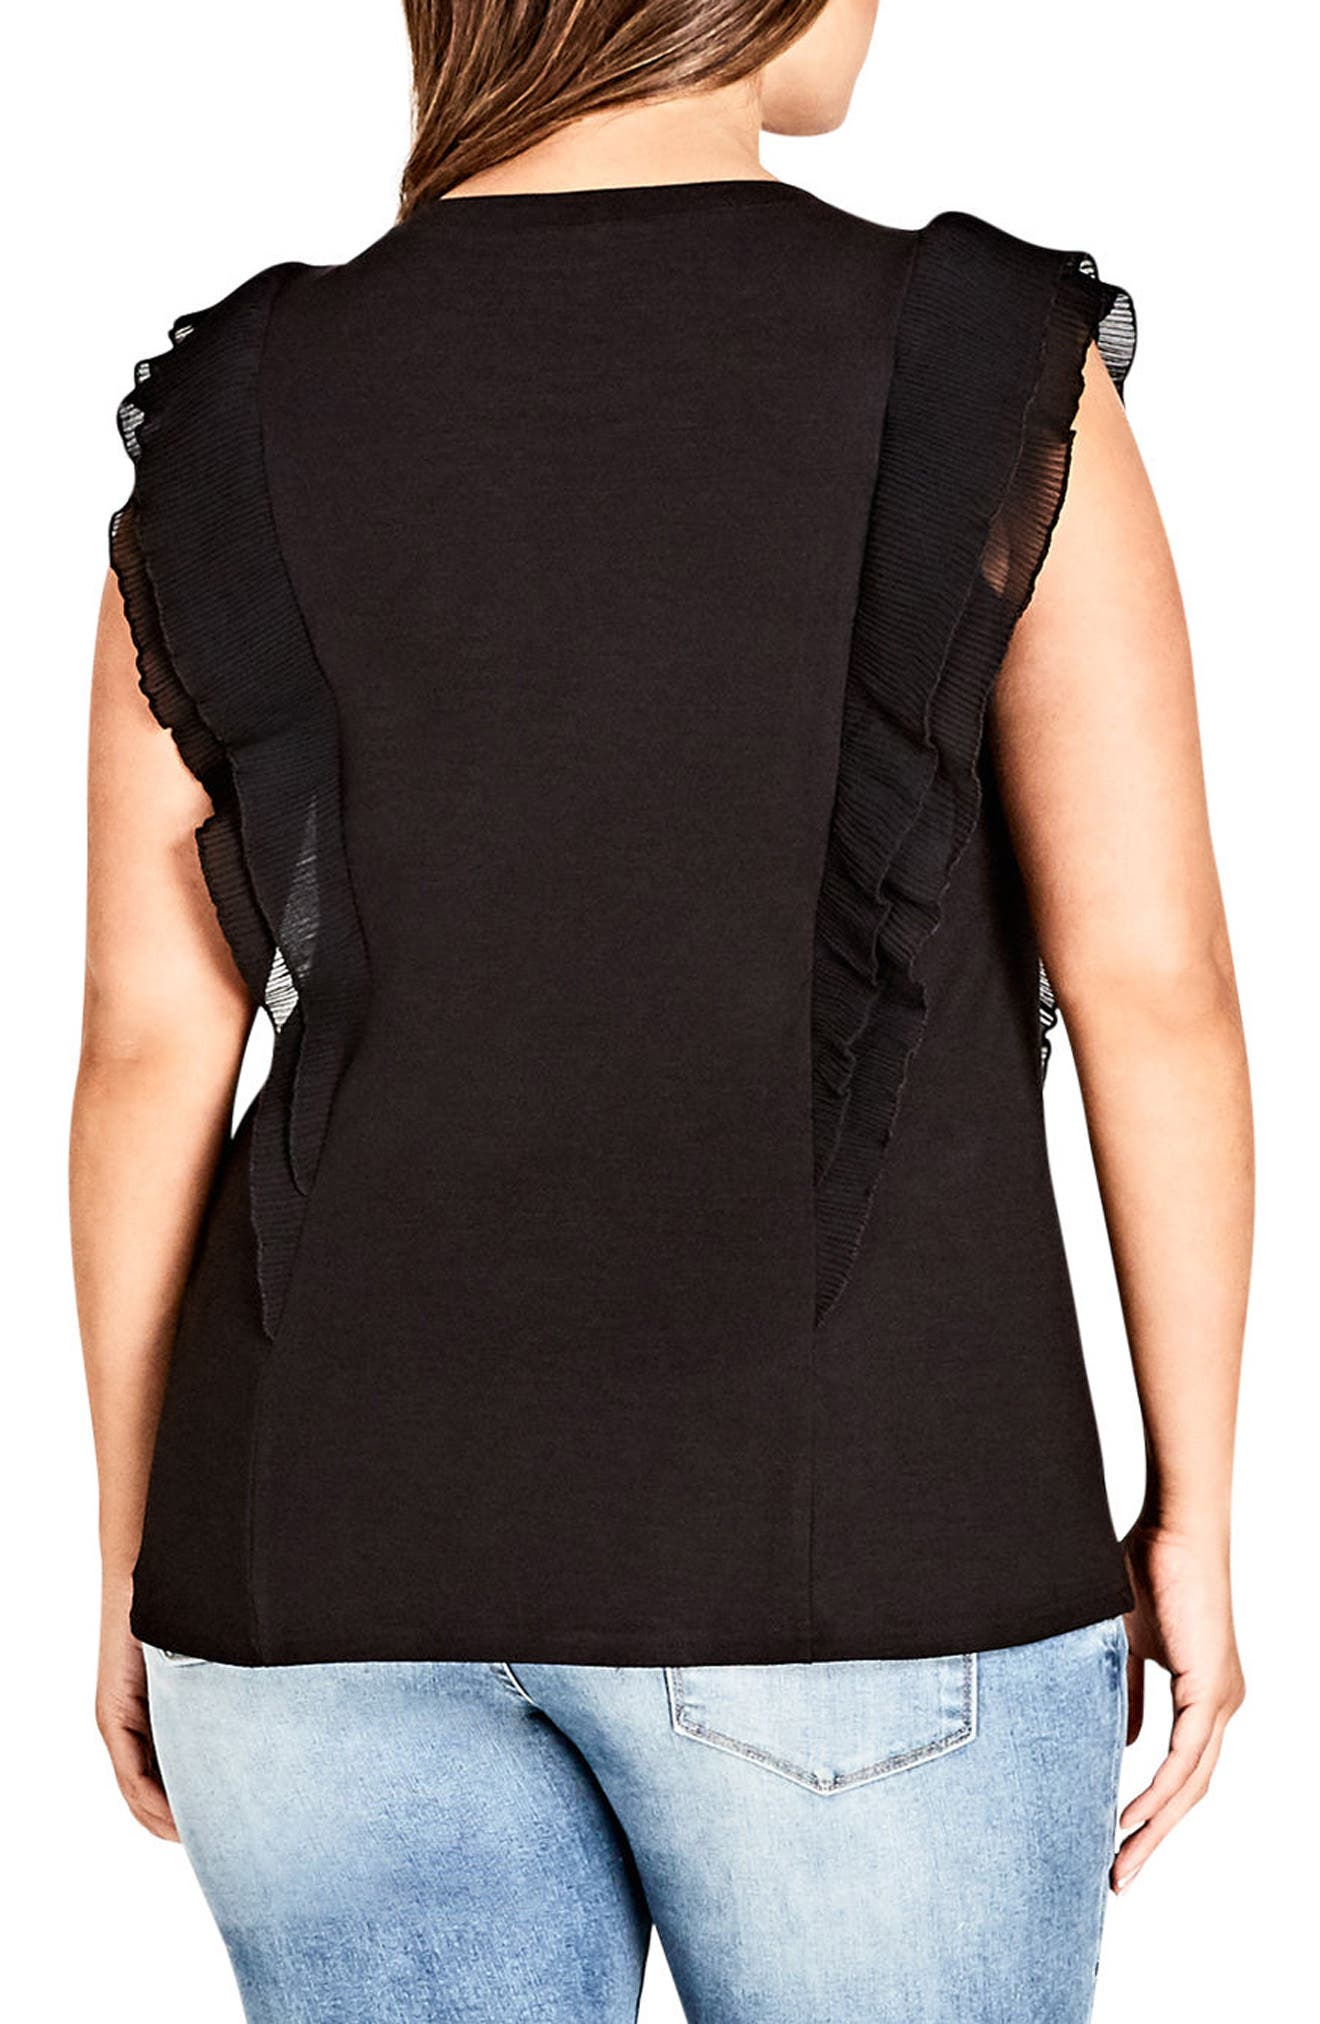 Chic Chic Aflutter Top,                             Alternate thumbnail 2, color,                             BLACK